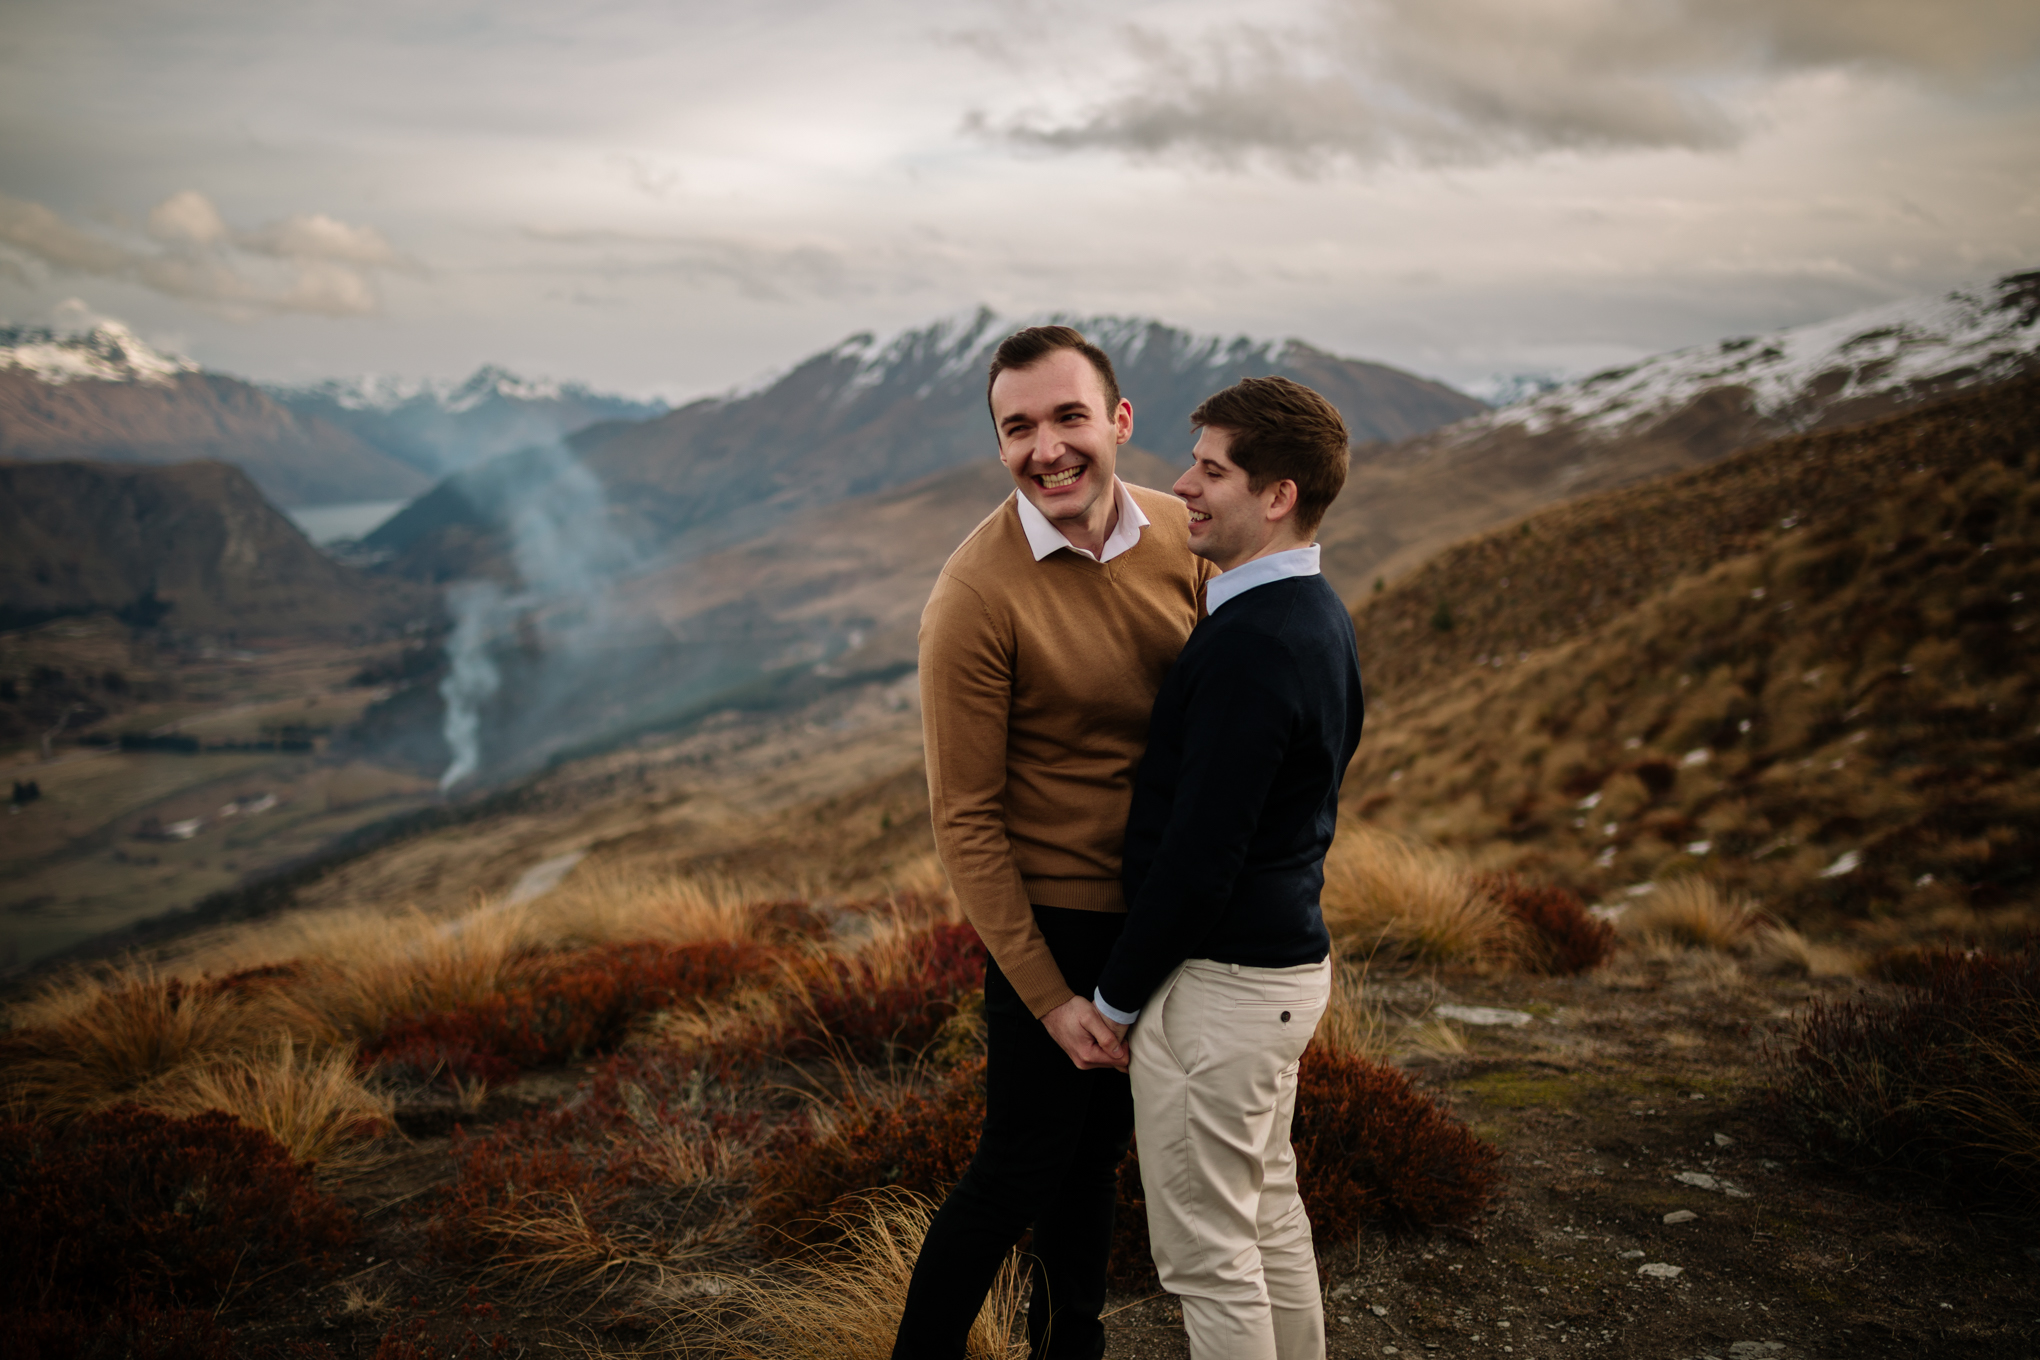 queenstownengagement-28.jpg